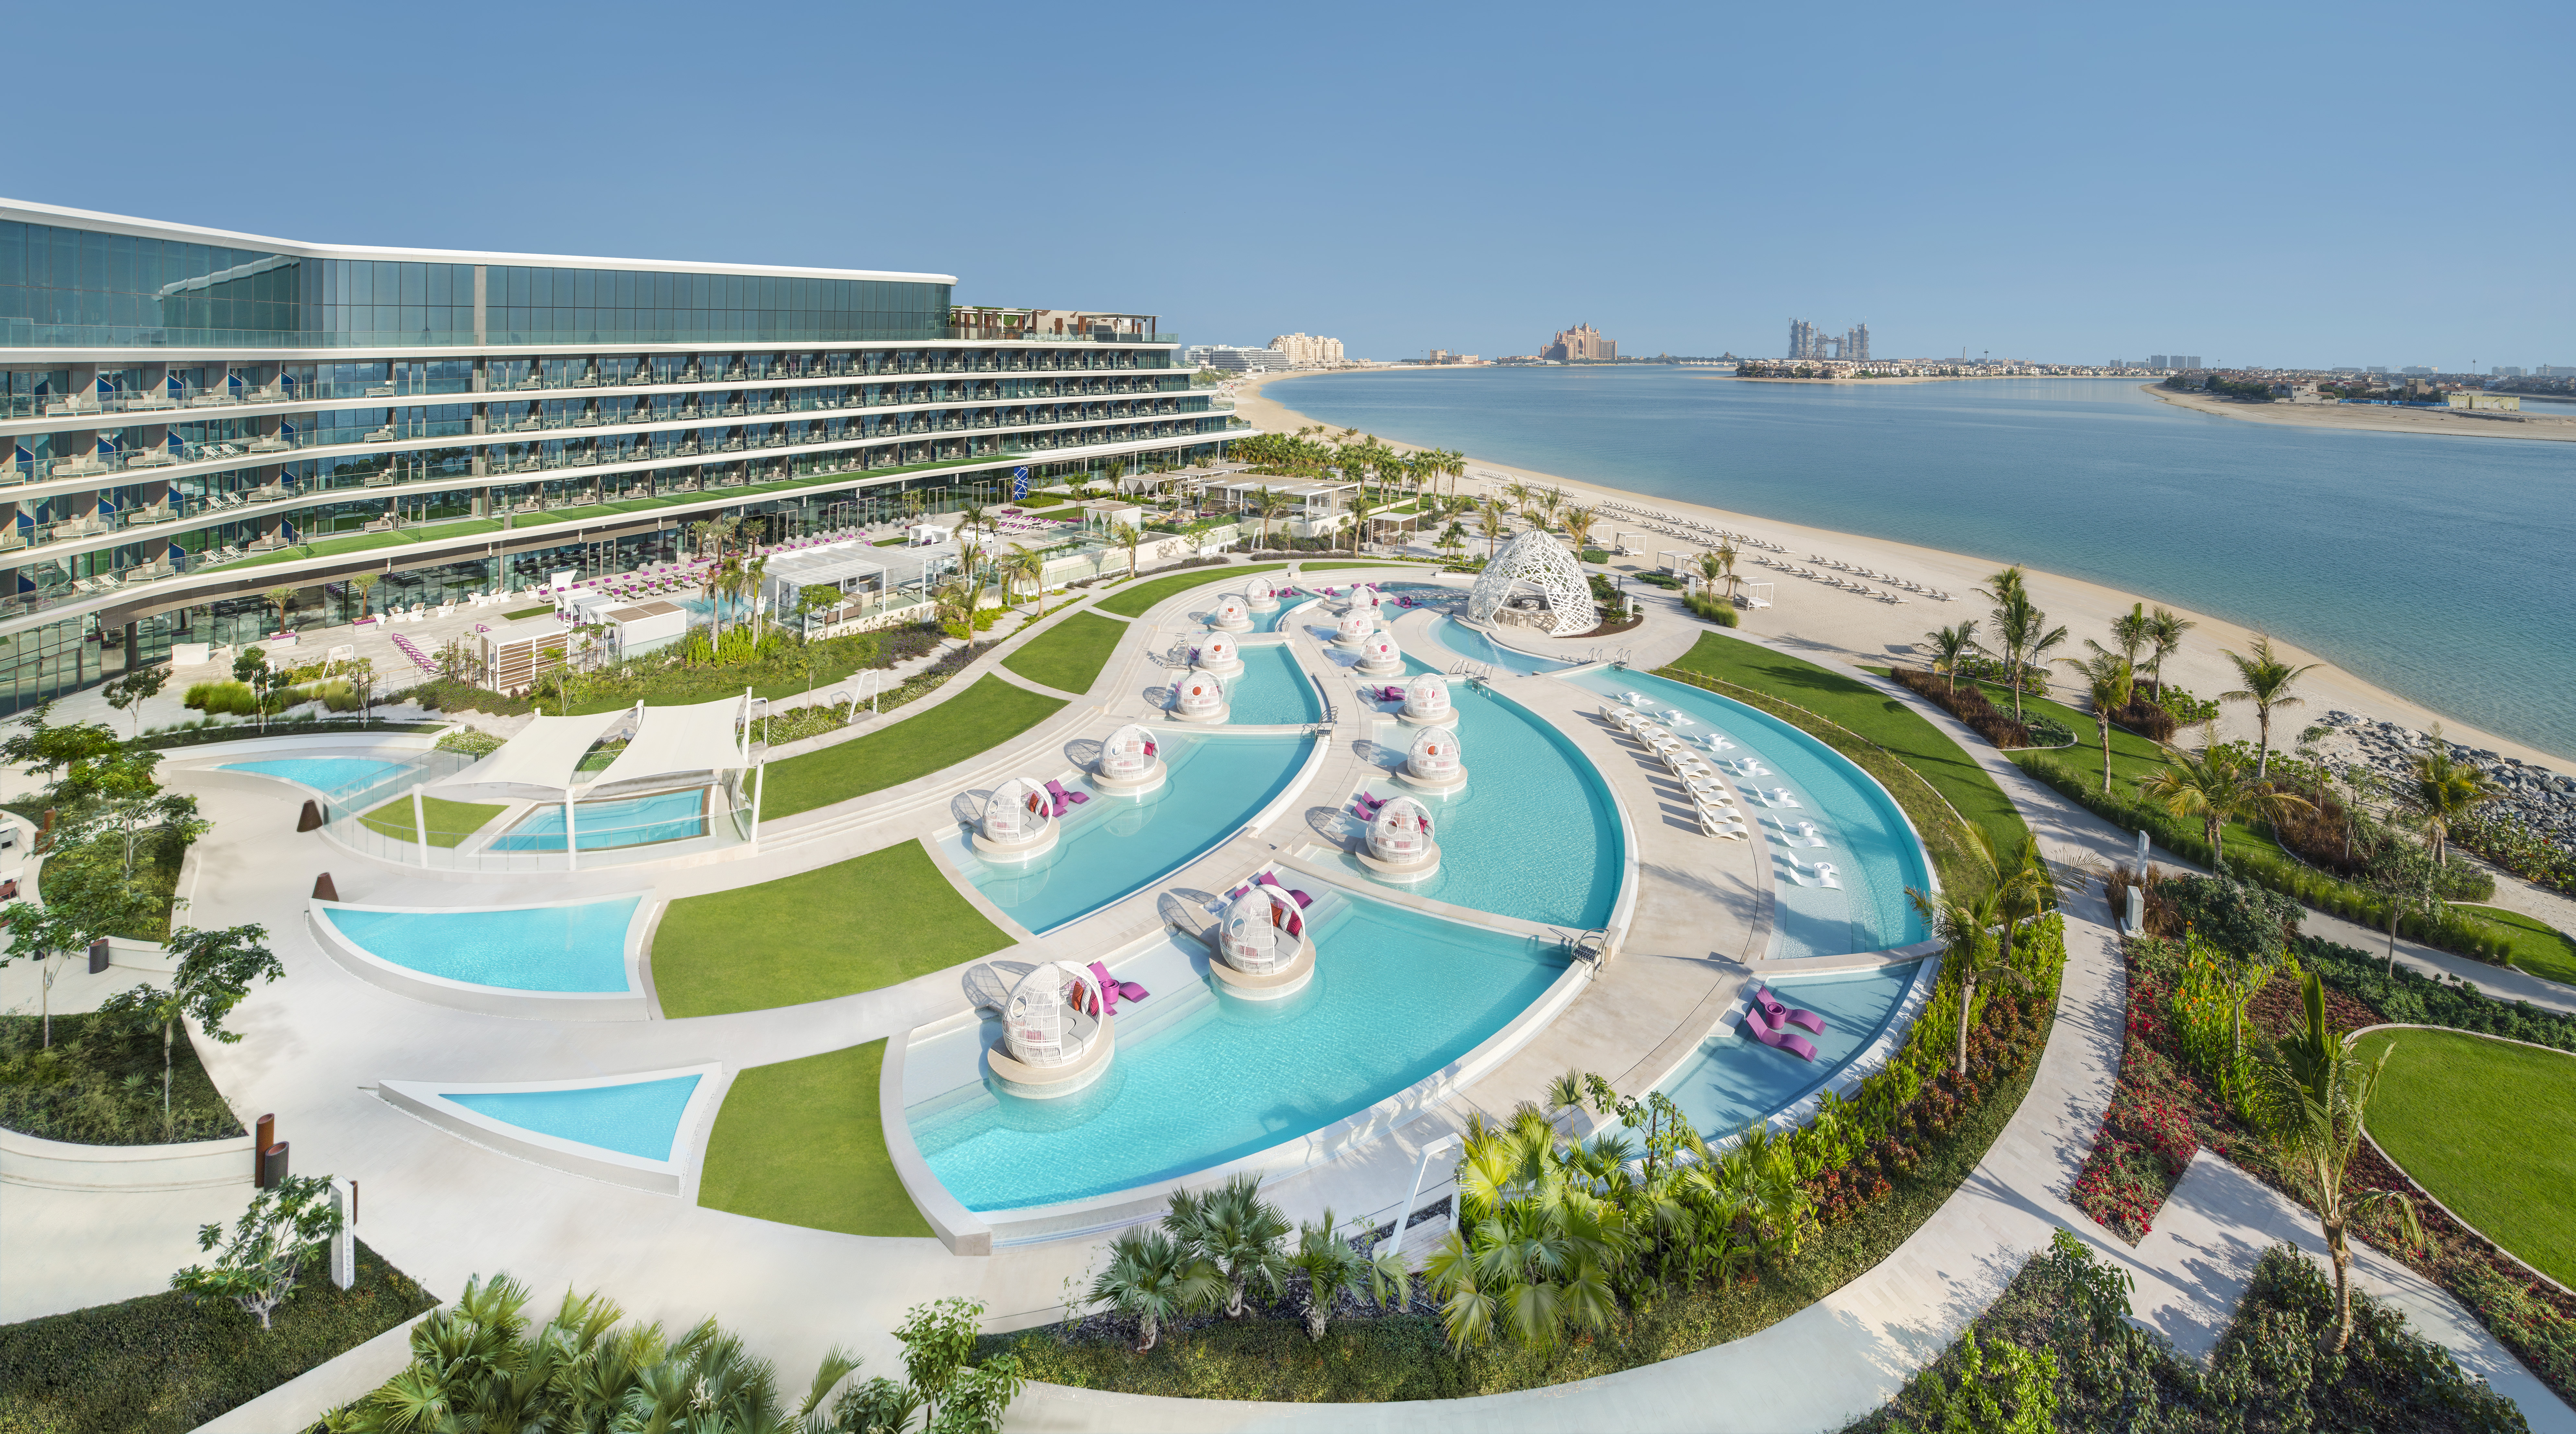 Sports Industry Awards returns to Palm Jumeirah for 8th edition